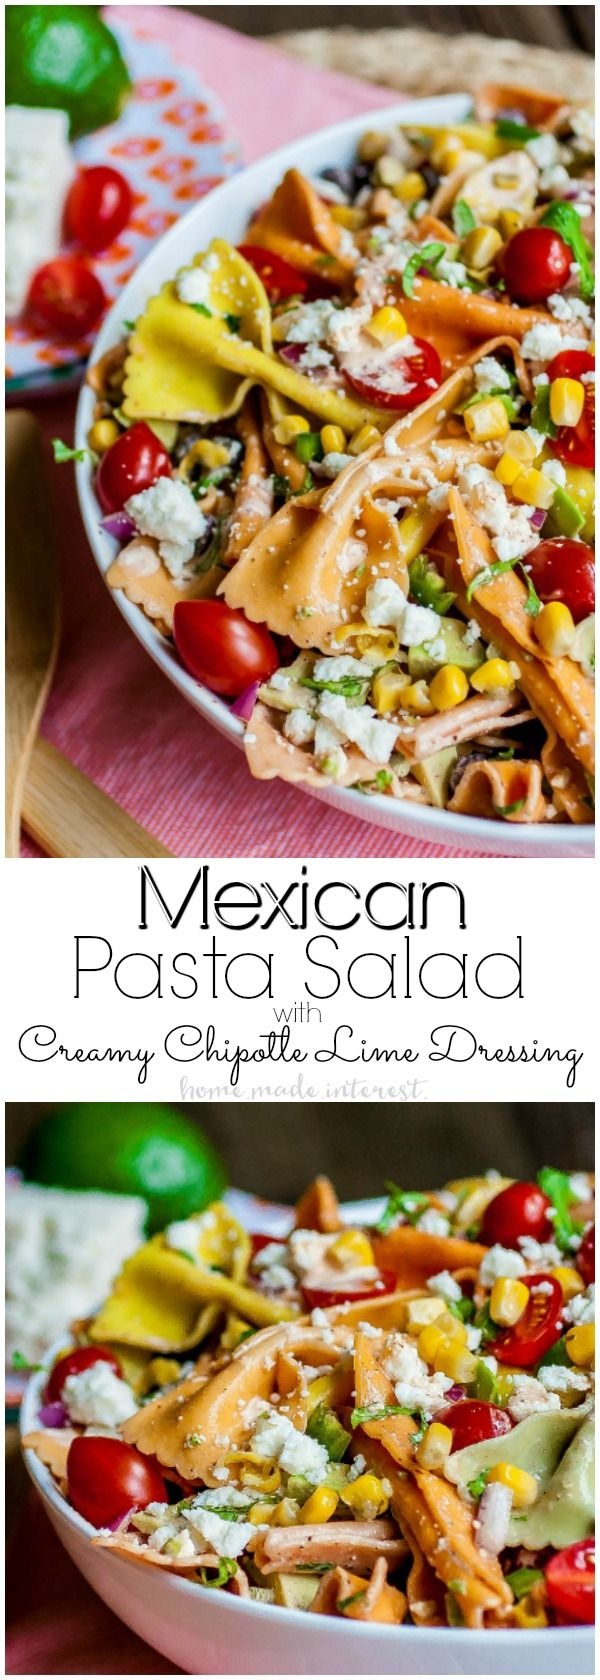 Mexican Pasta Salad with Creamy Chipotle Lime Dressing